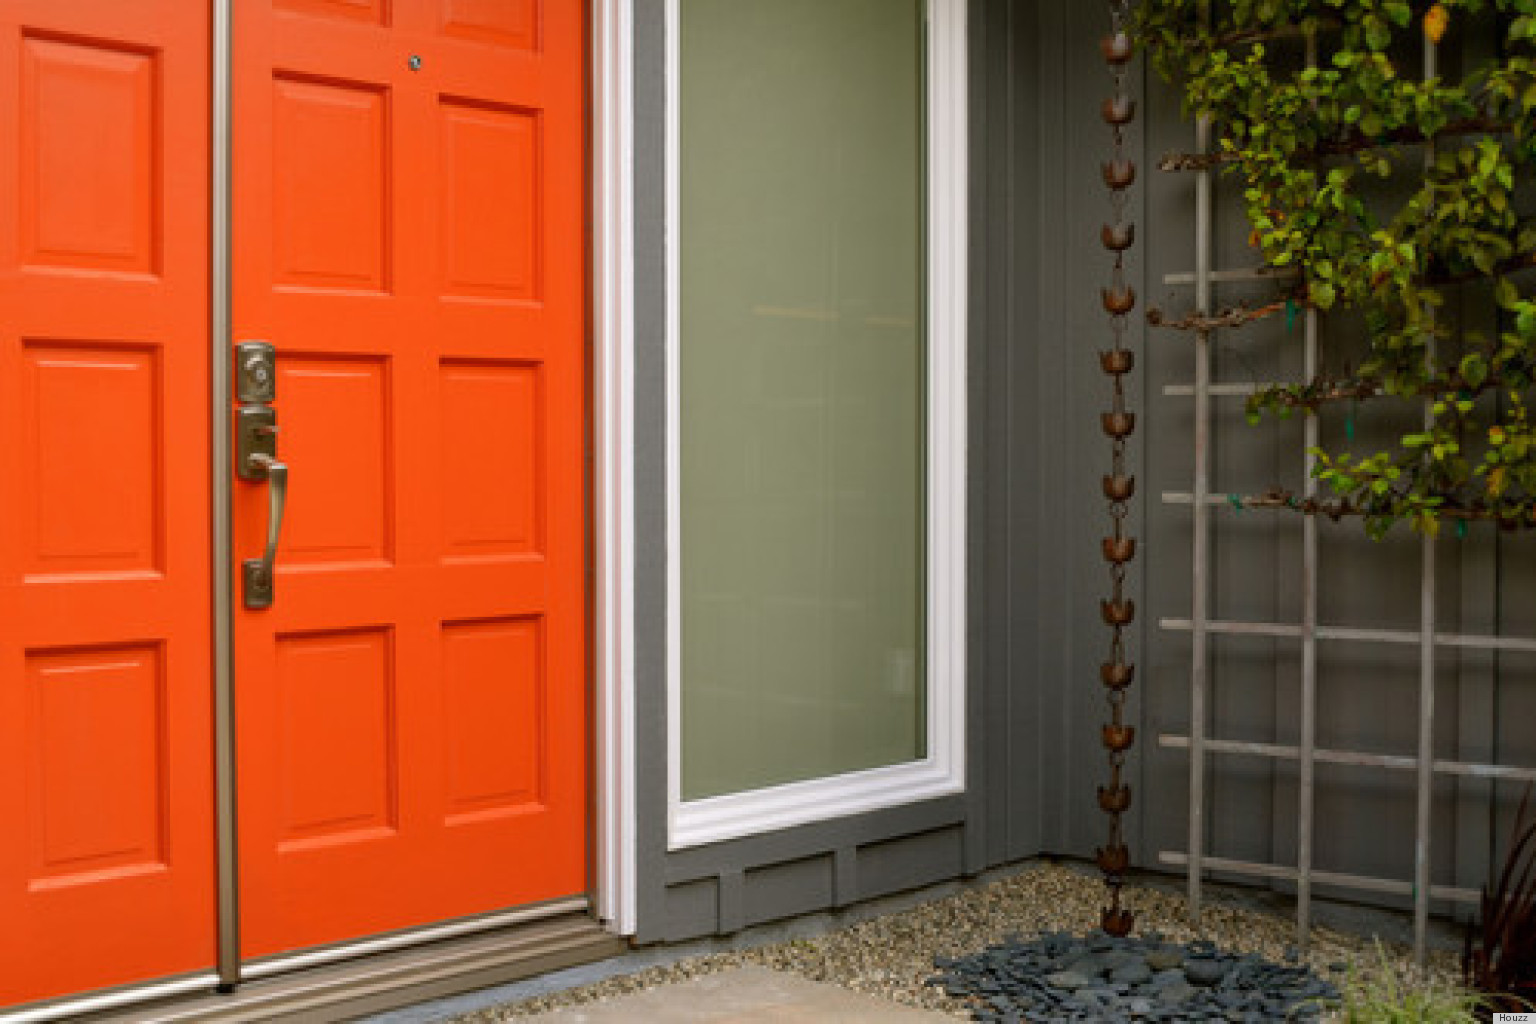 Elegant The 6 Absolute Best Paint Colors For Your Front Door (PHOTOS) | HuffPost